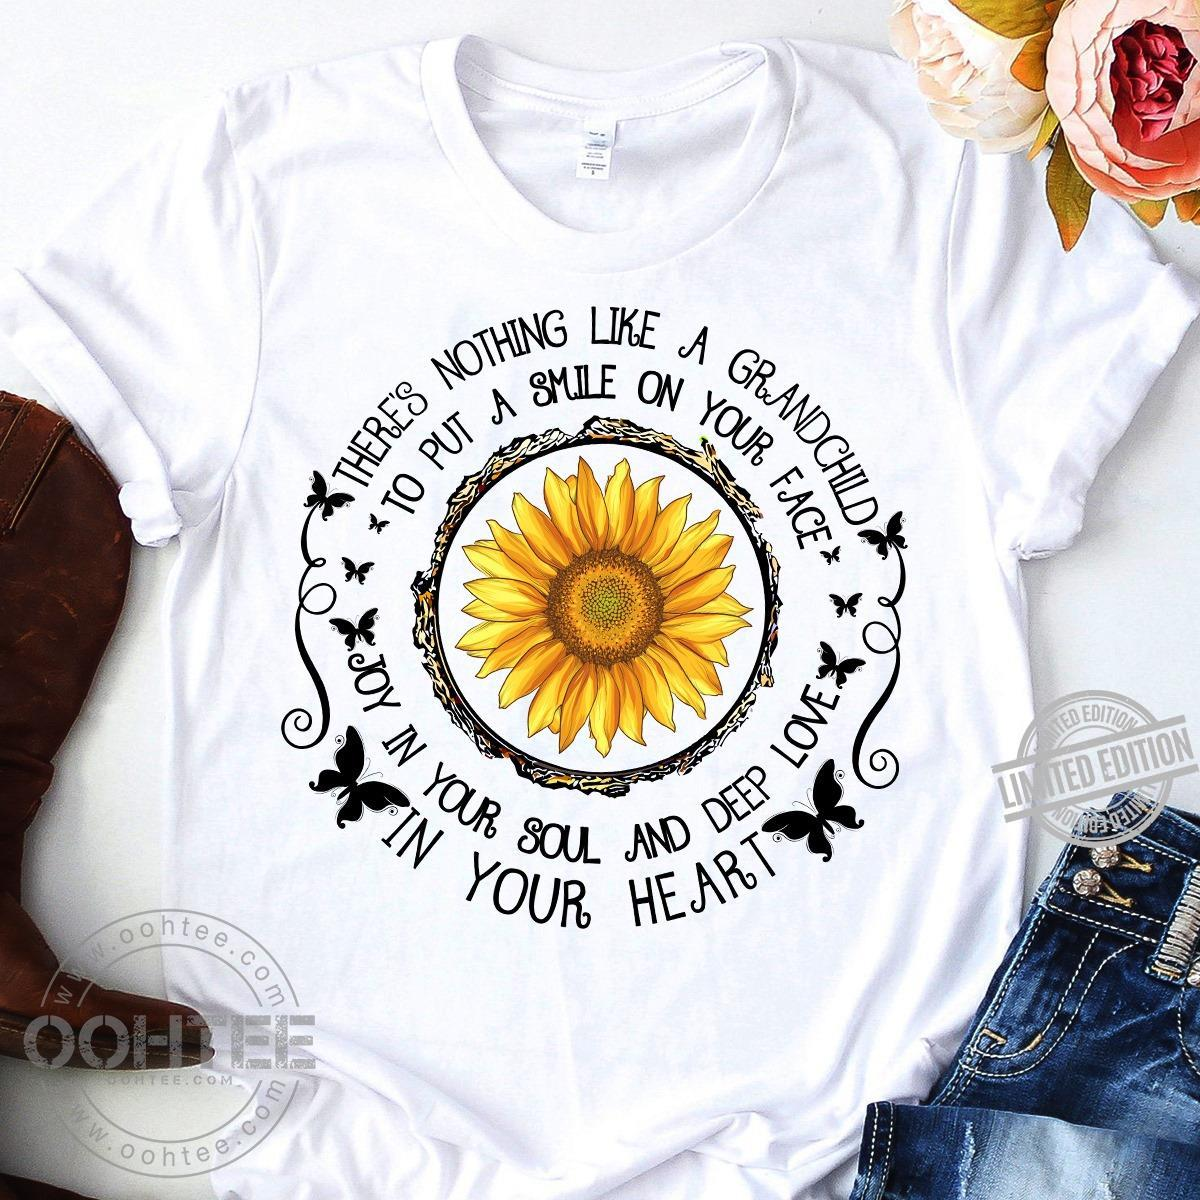 There's Nothing Like A Grandchild To Put A Smile On Your Face Joy In Your Soul And Deep Love In Your Heart Shirt